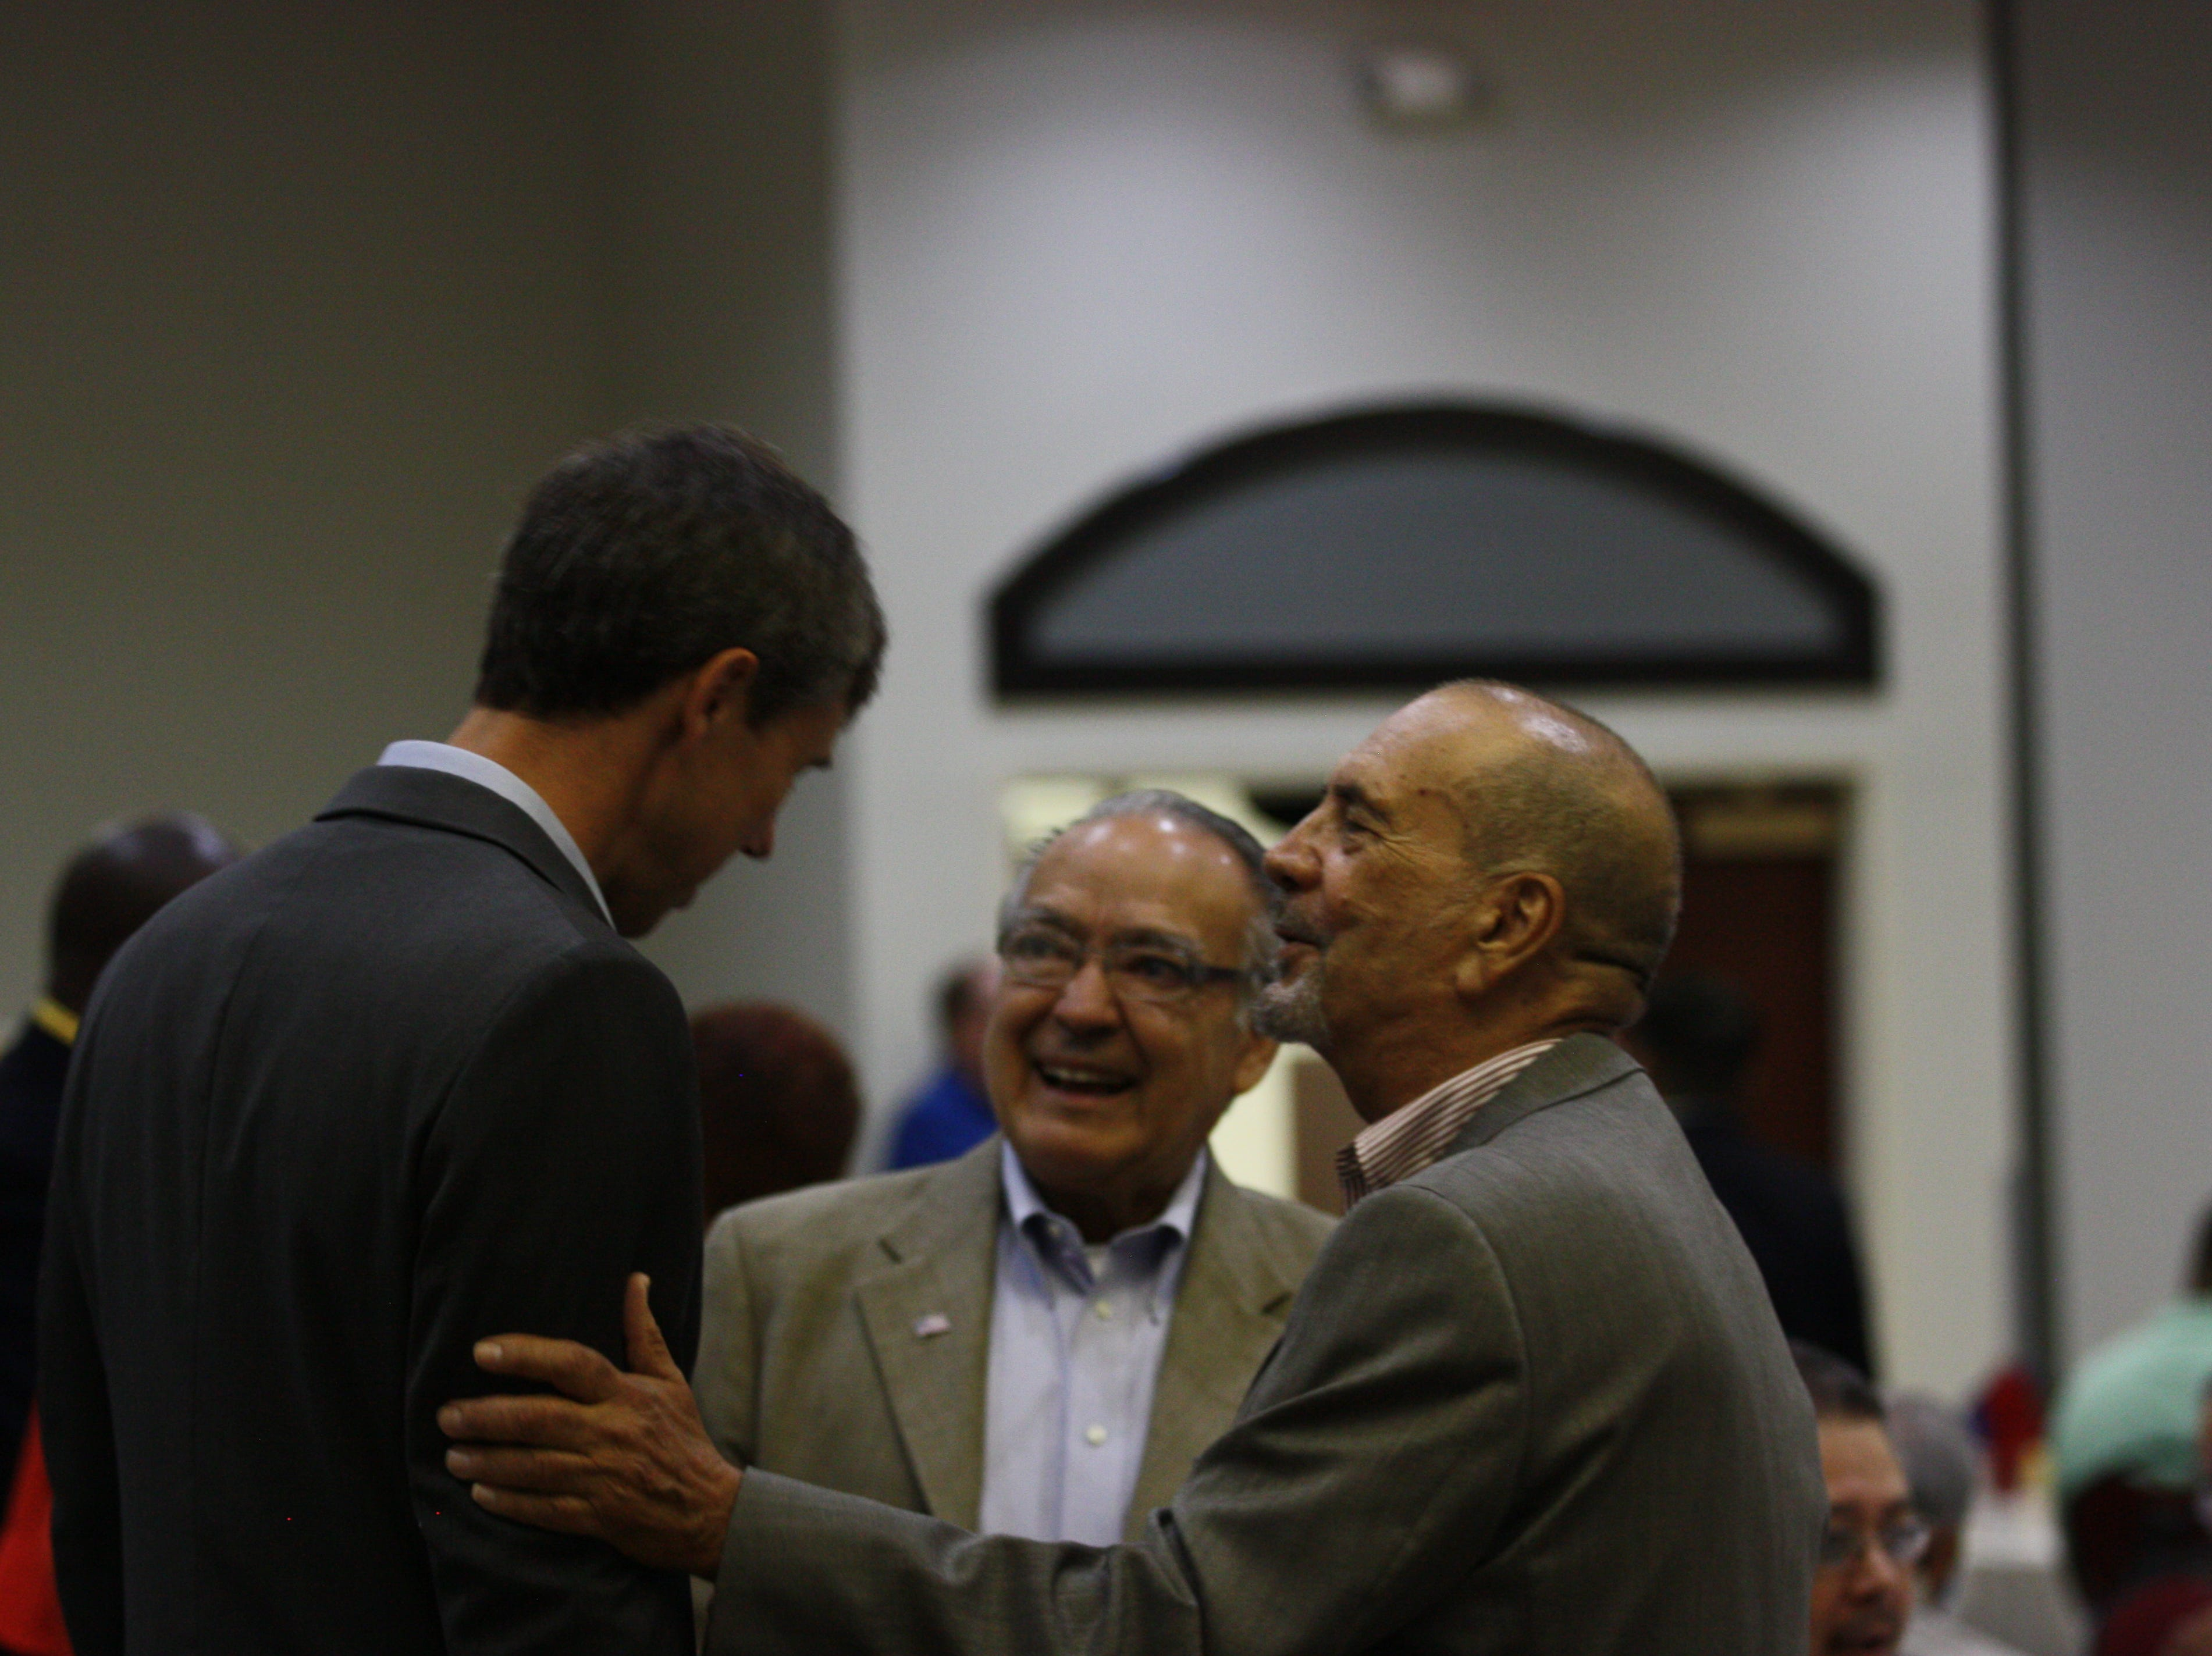 U.S. Rep. Beto O'Rourke chats with attendees at the 44th annual Labor Day Breakfast on Monday in Central El Paso.